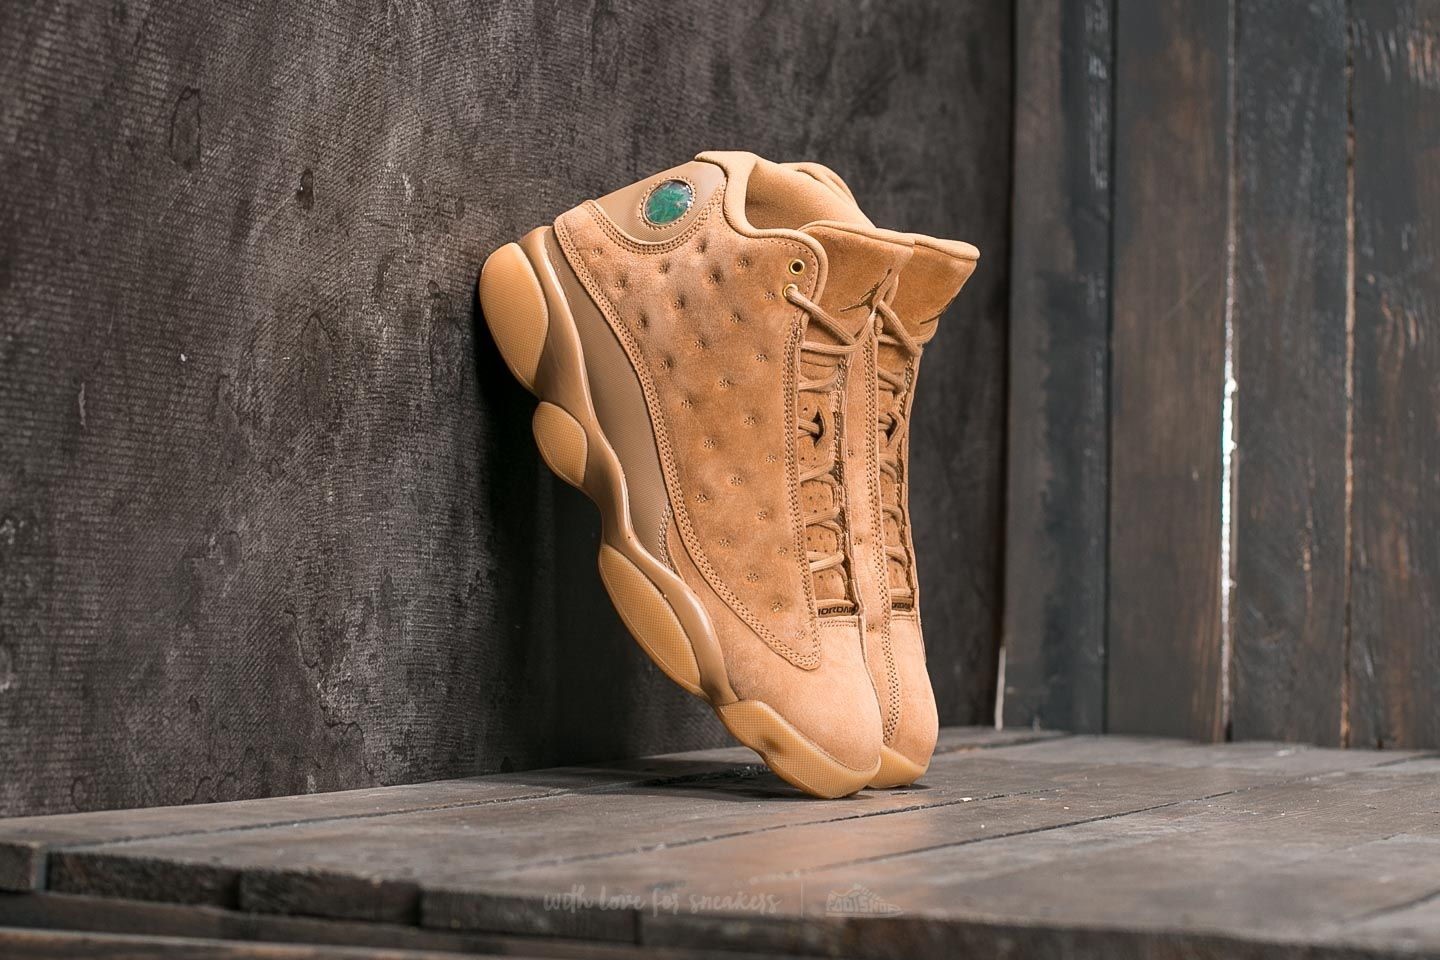 Air Jordan 13 Retro Elemental Gold/ Baroque Brown - 23163